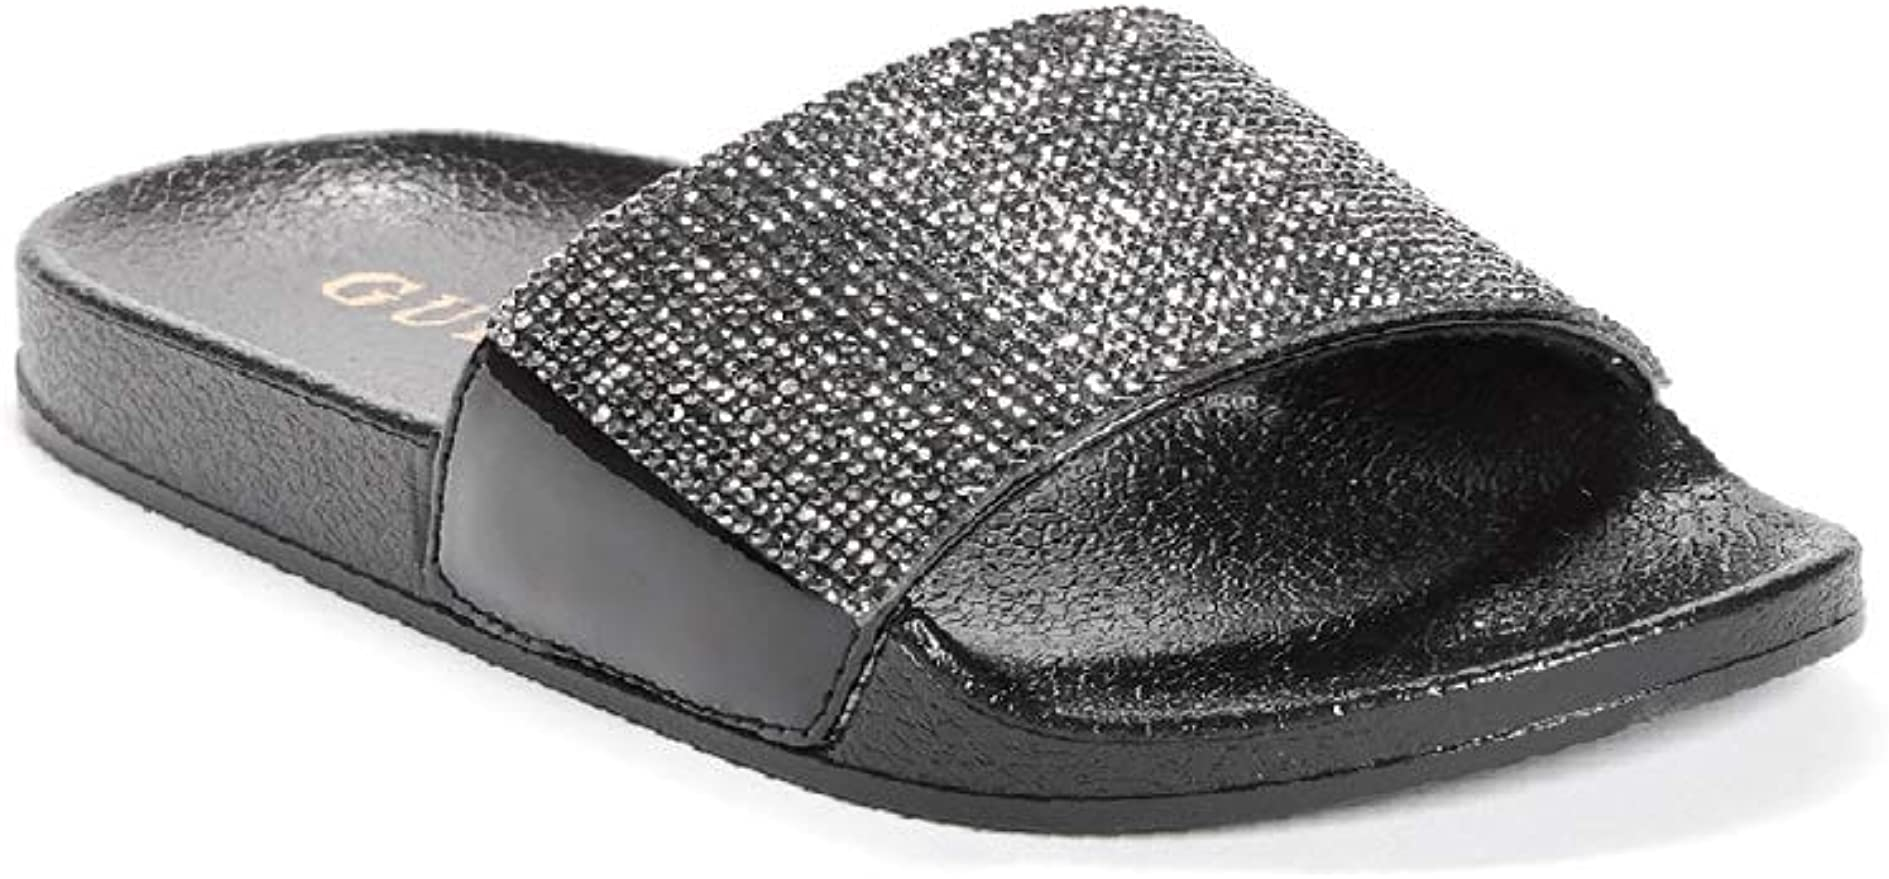 guess slip on sandals